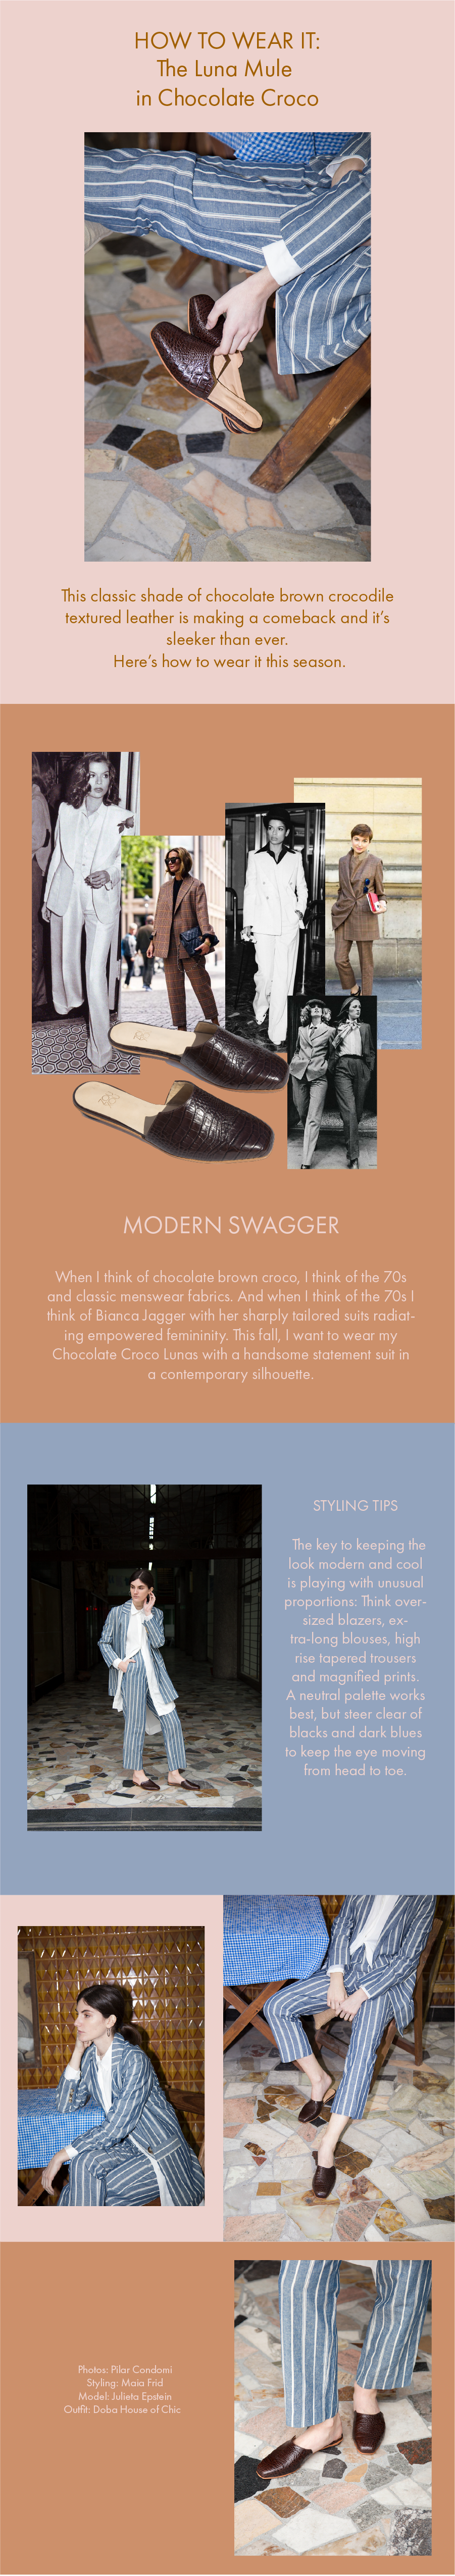 How To Wear It_Chocolate Croco Luna-02.png